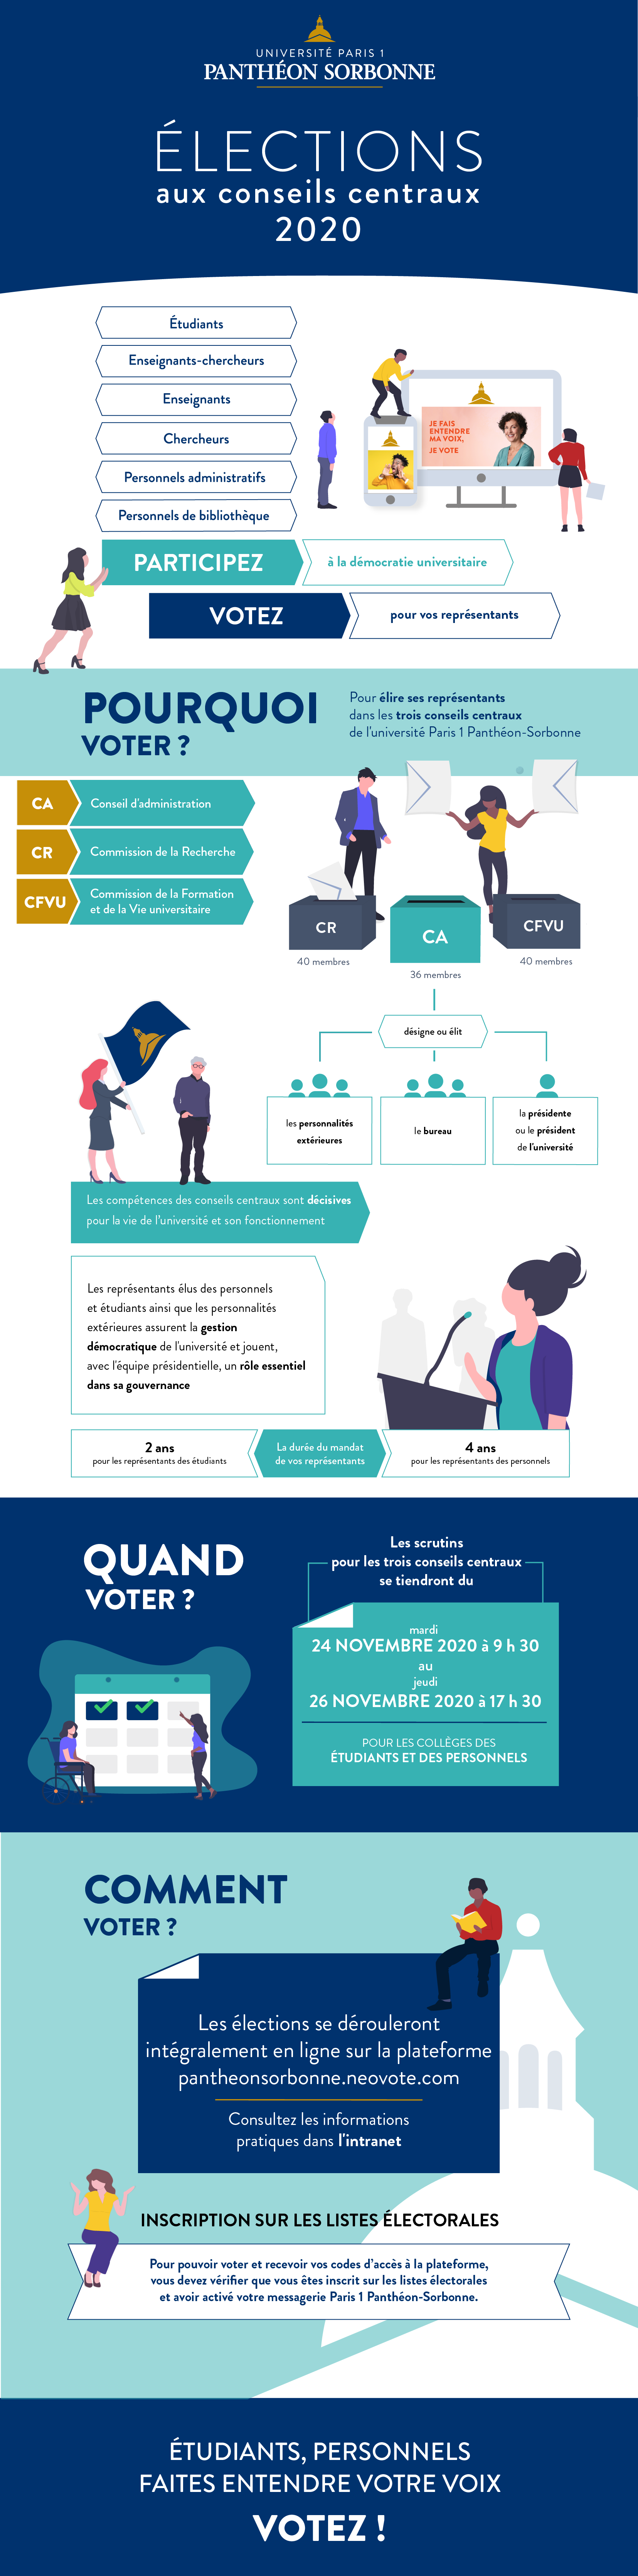 Infographie - Elections 2020